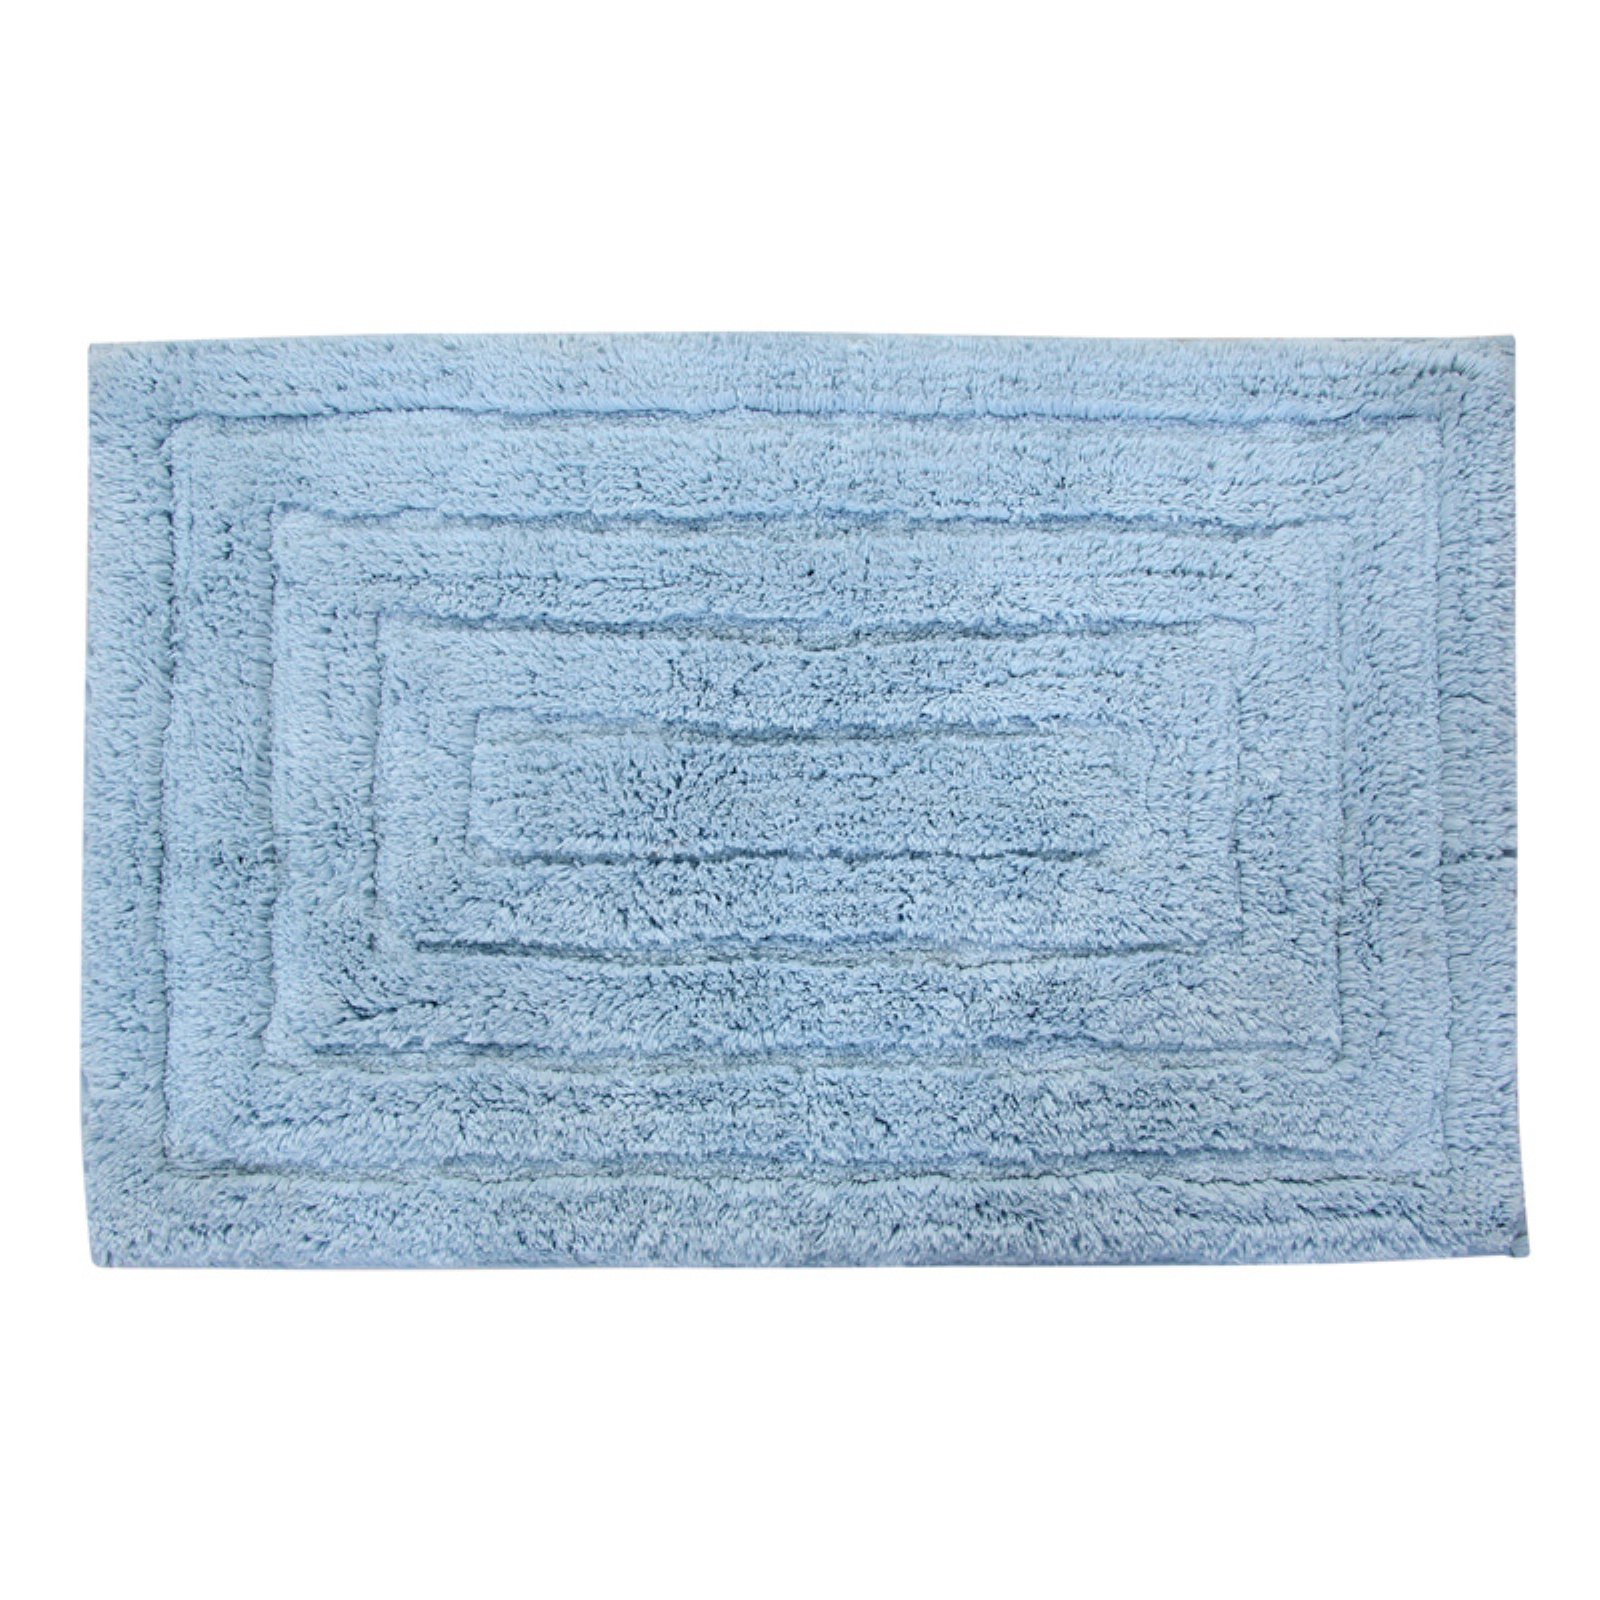 Elegance Collection Racetrack Bath Rug